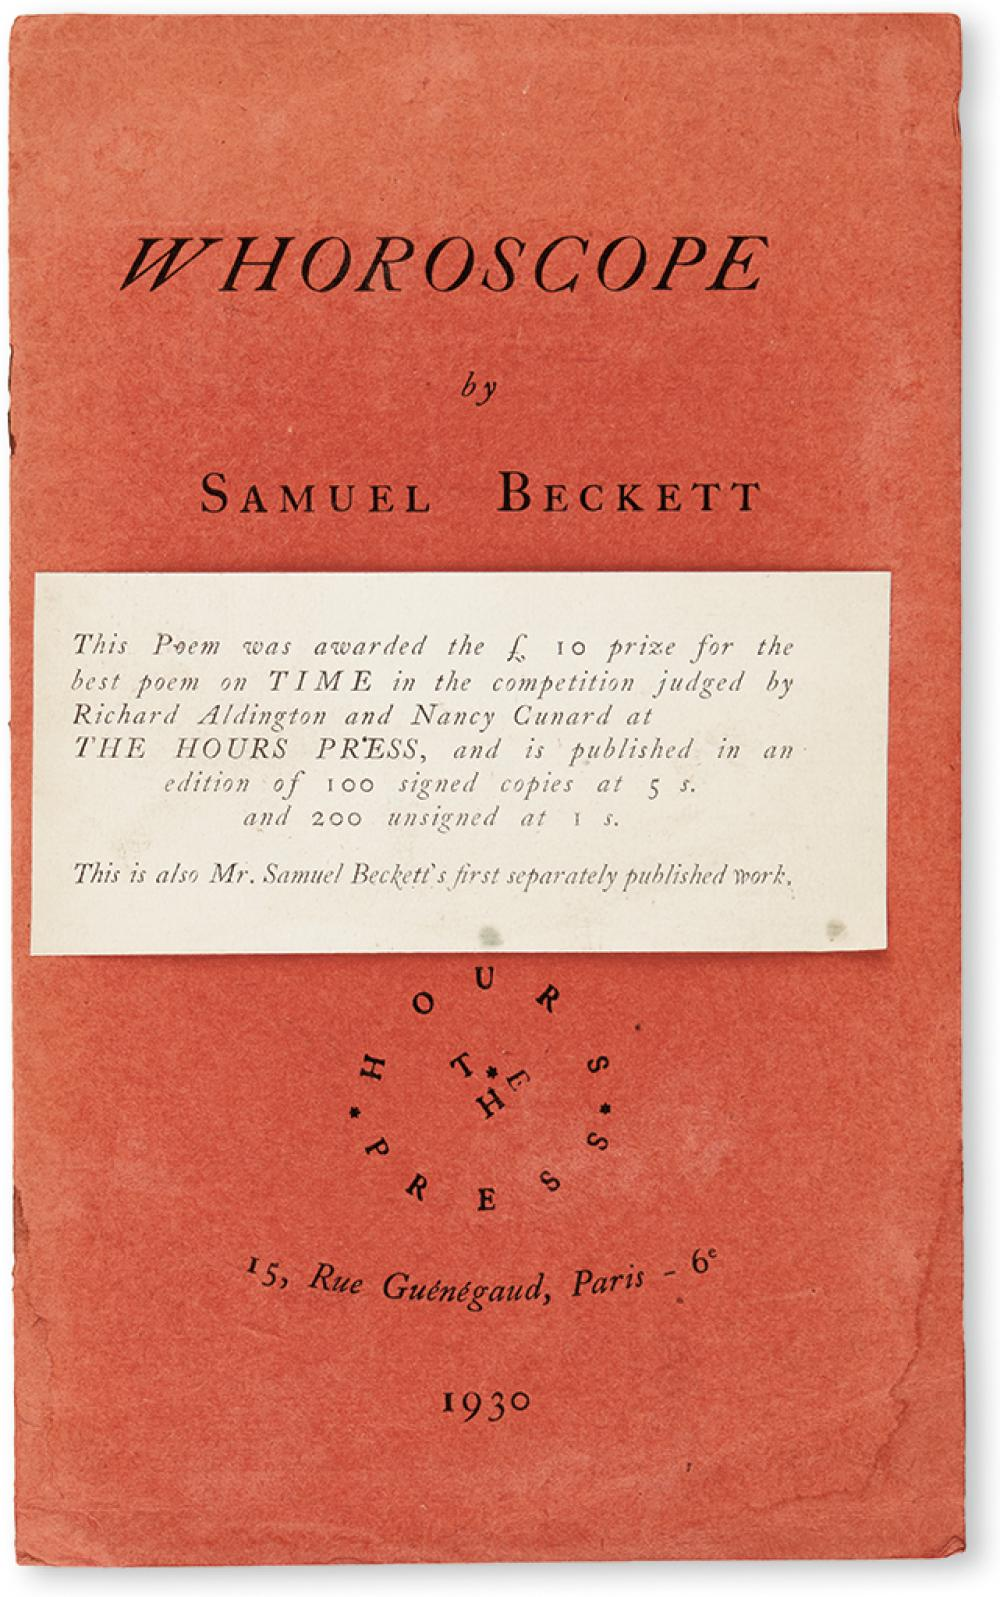 BECKETT, SAMUEL. Whoroscope.